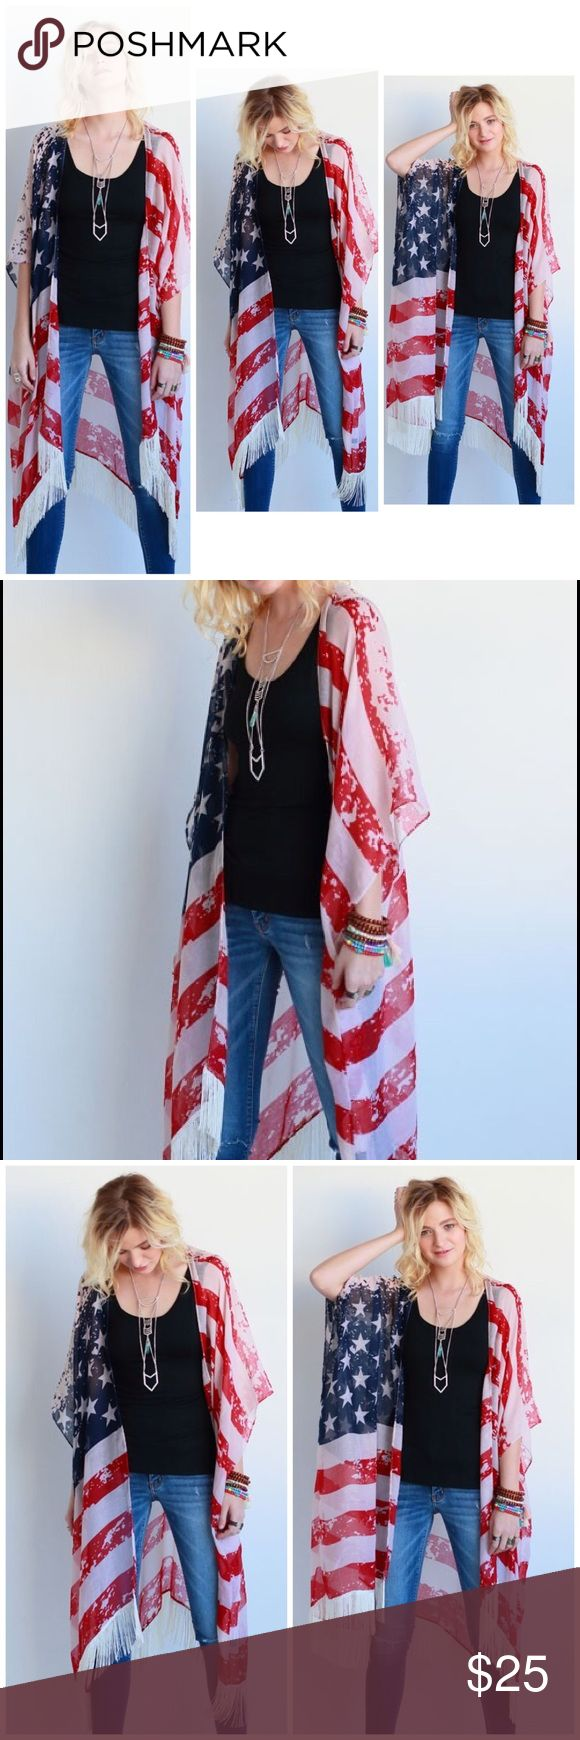 American flag kimono forth of july New great quality and great for 4th of July!! Jackets & Coats